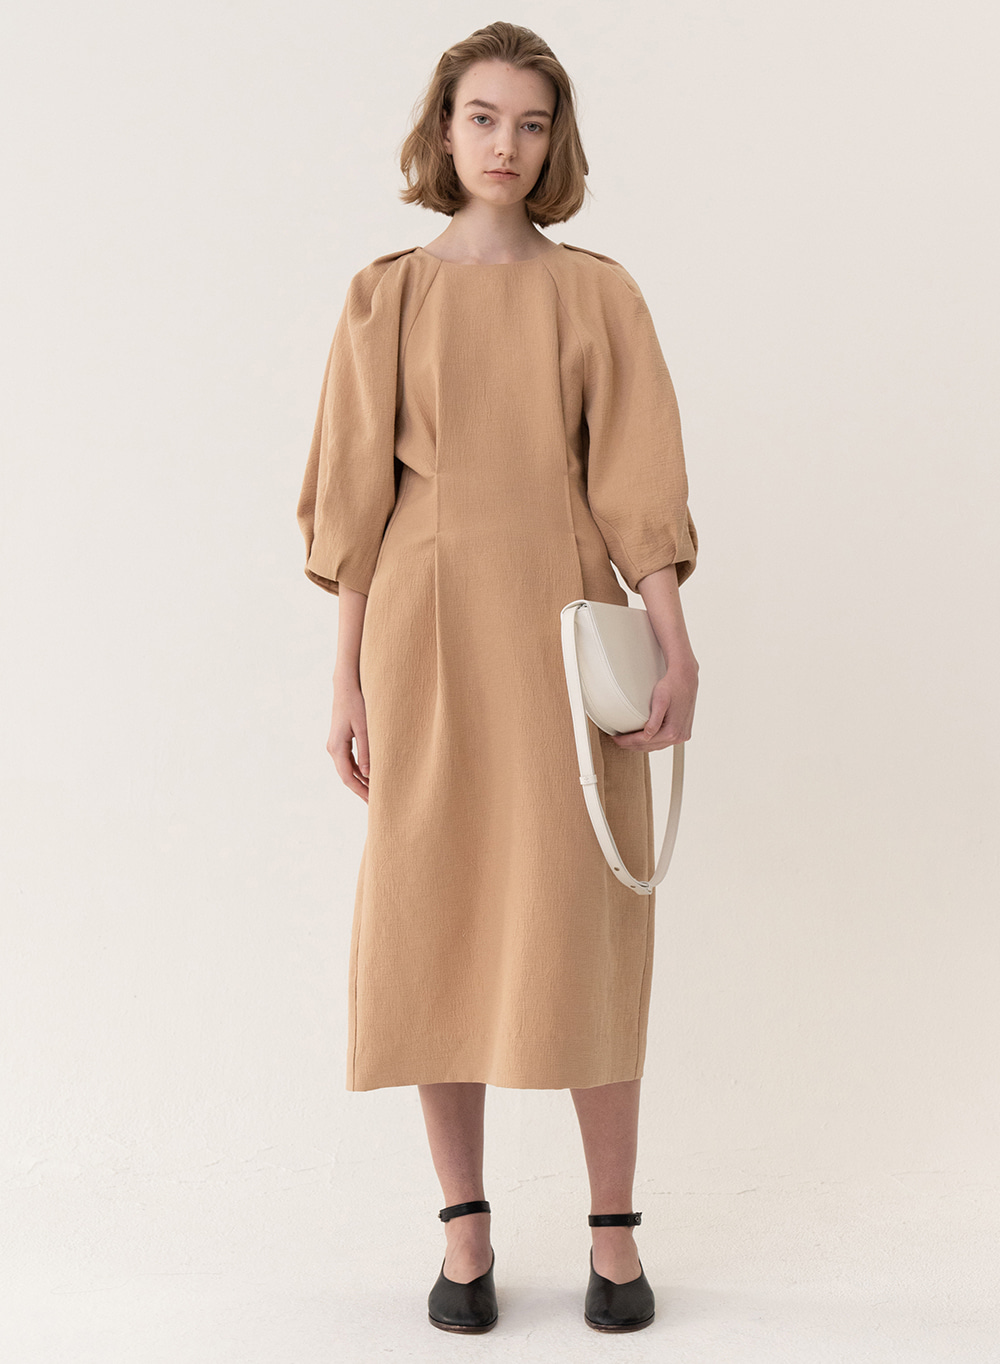 [ESSENTIAL] Cocoon Silhouette Dress Tan